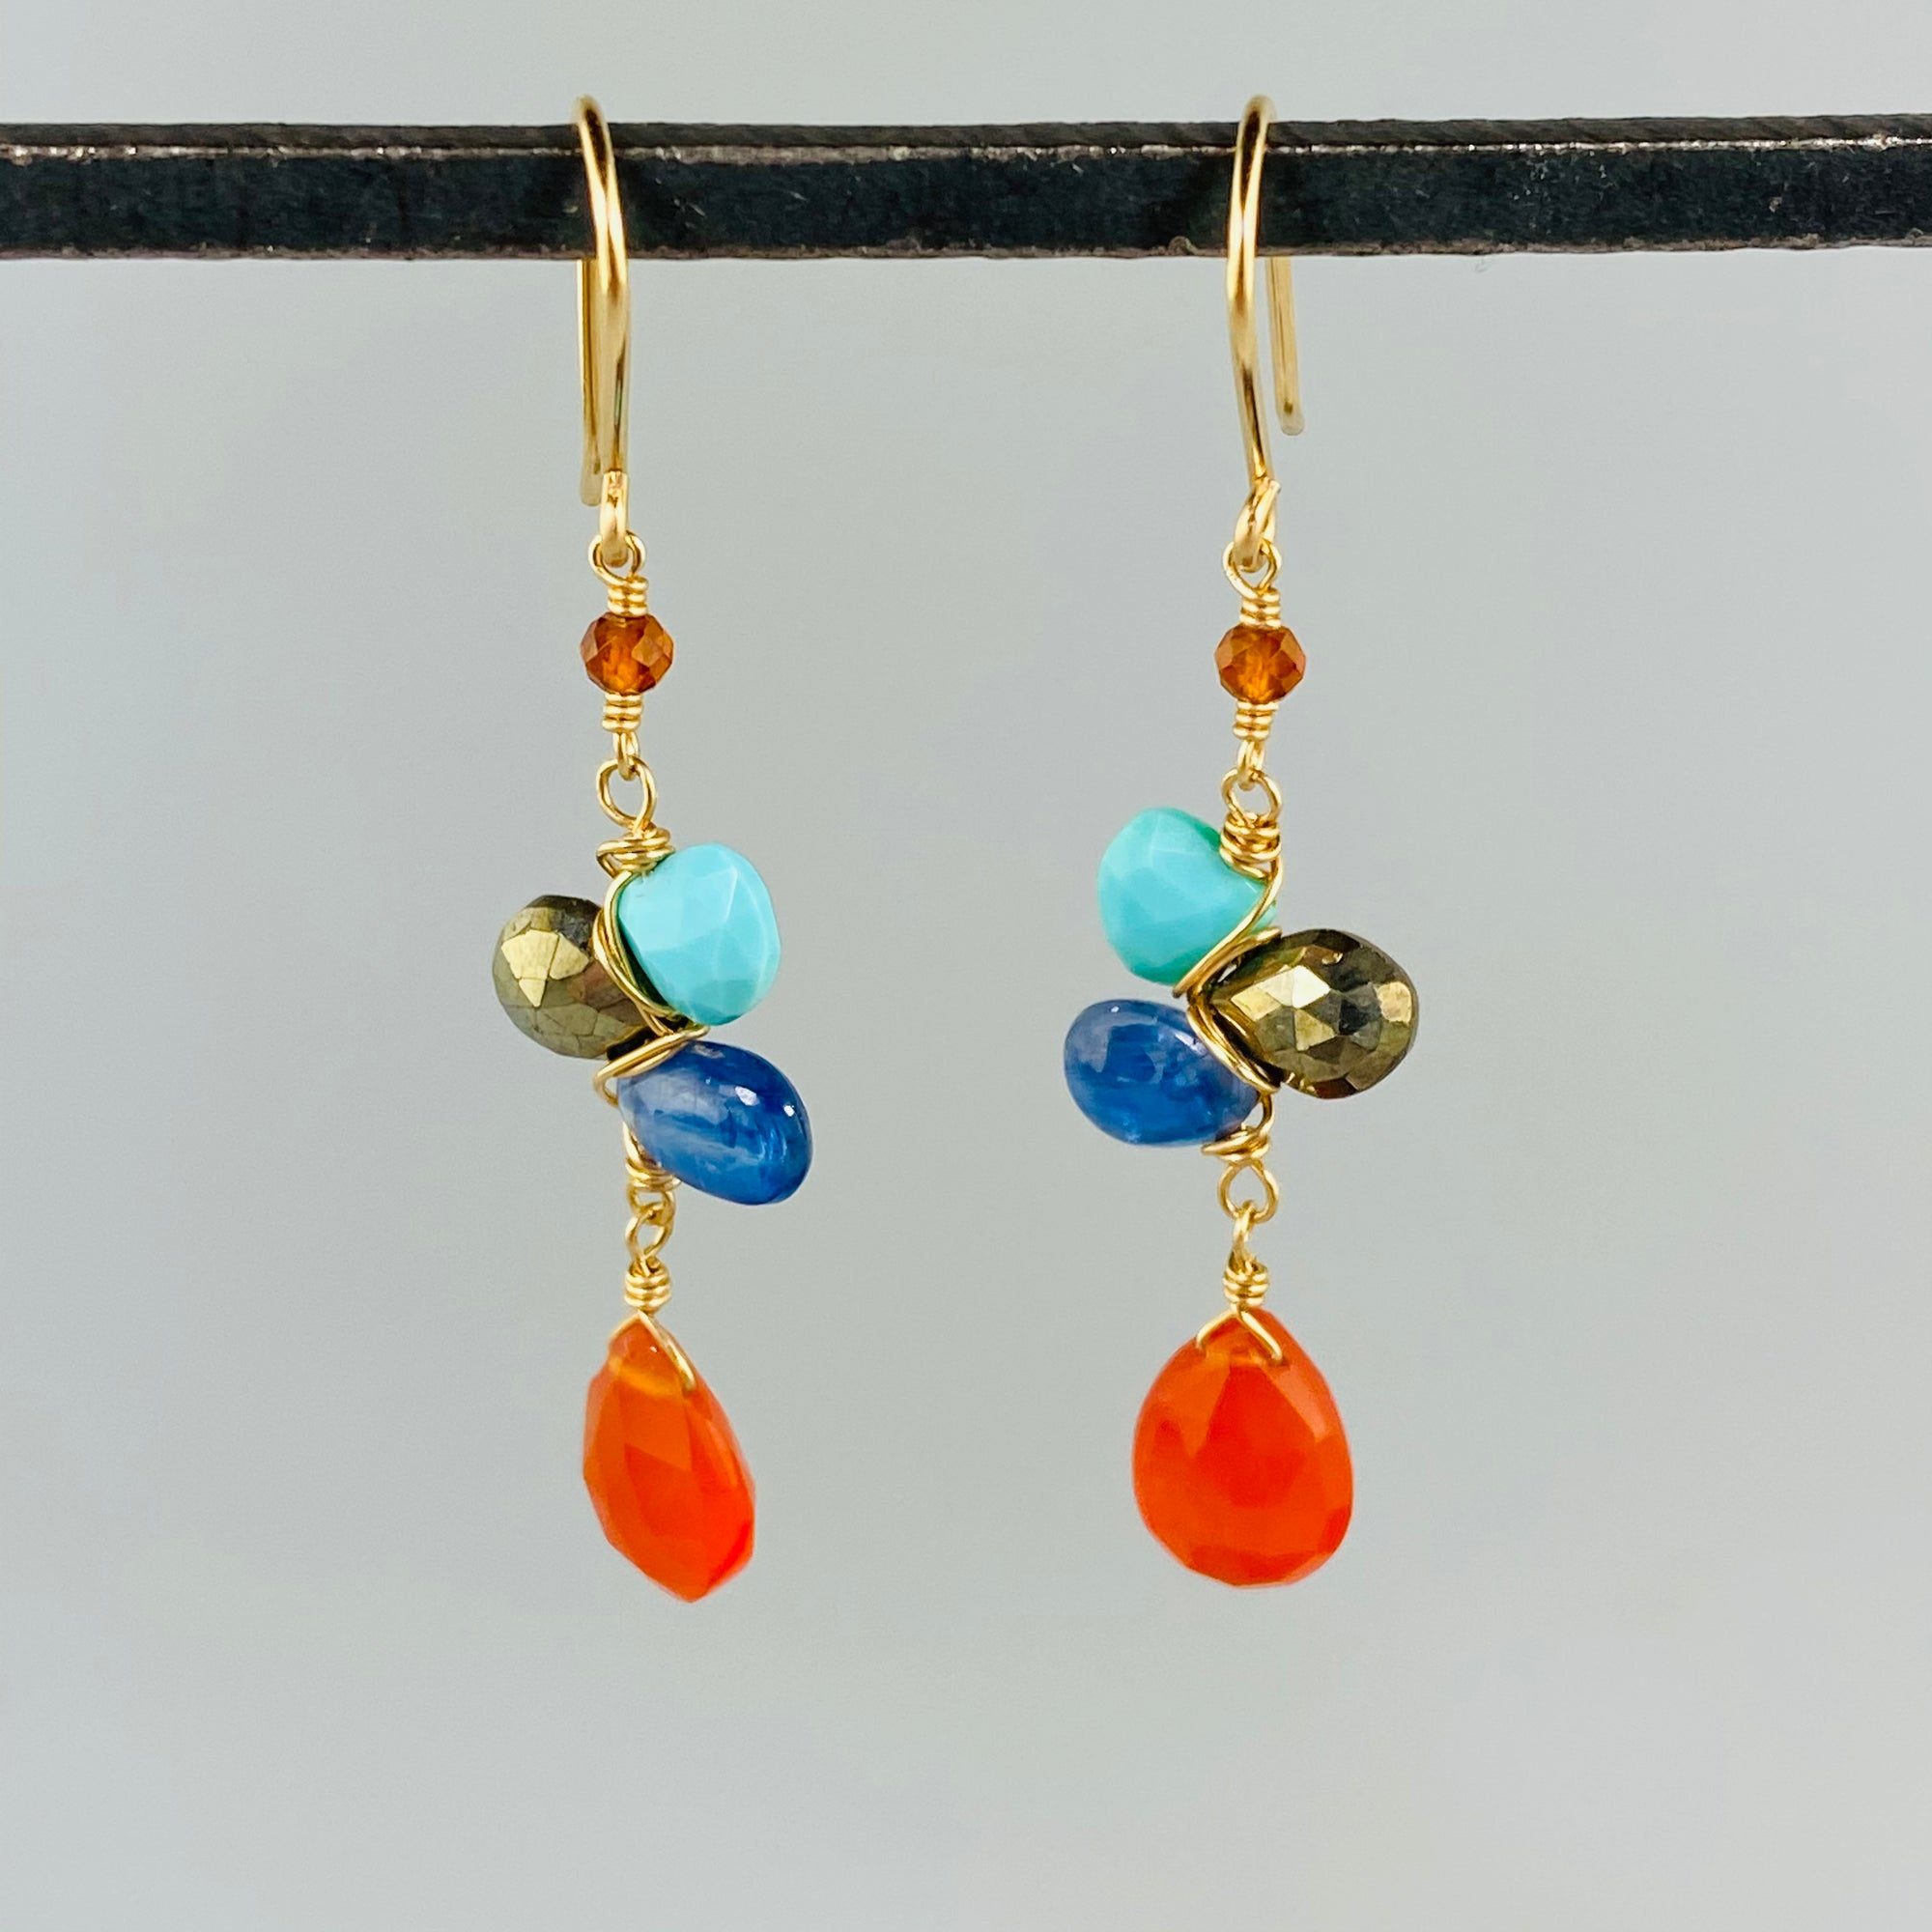 Woven Fox Gemstone Earrings - Heart of the Home PA